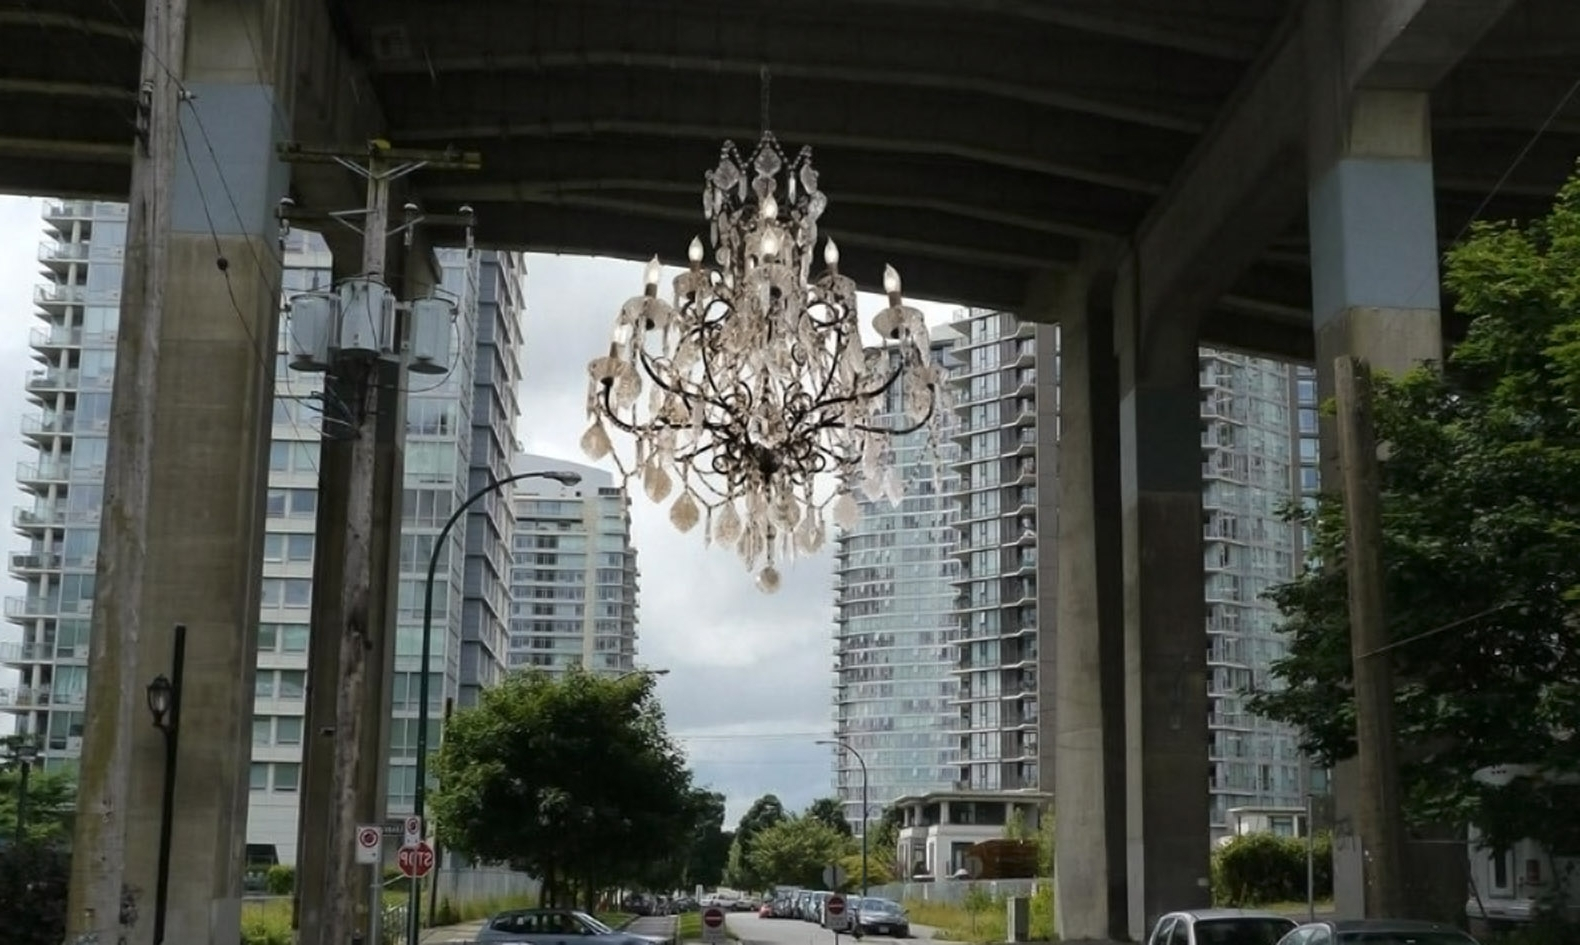 Vancouver Lights Up A Dark Highway Overpass With A Massive For Most Recent Massive Chandelier (View 19 of 20)